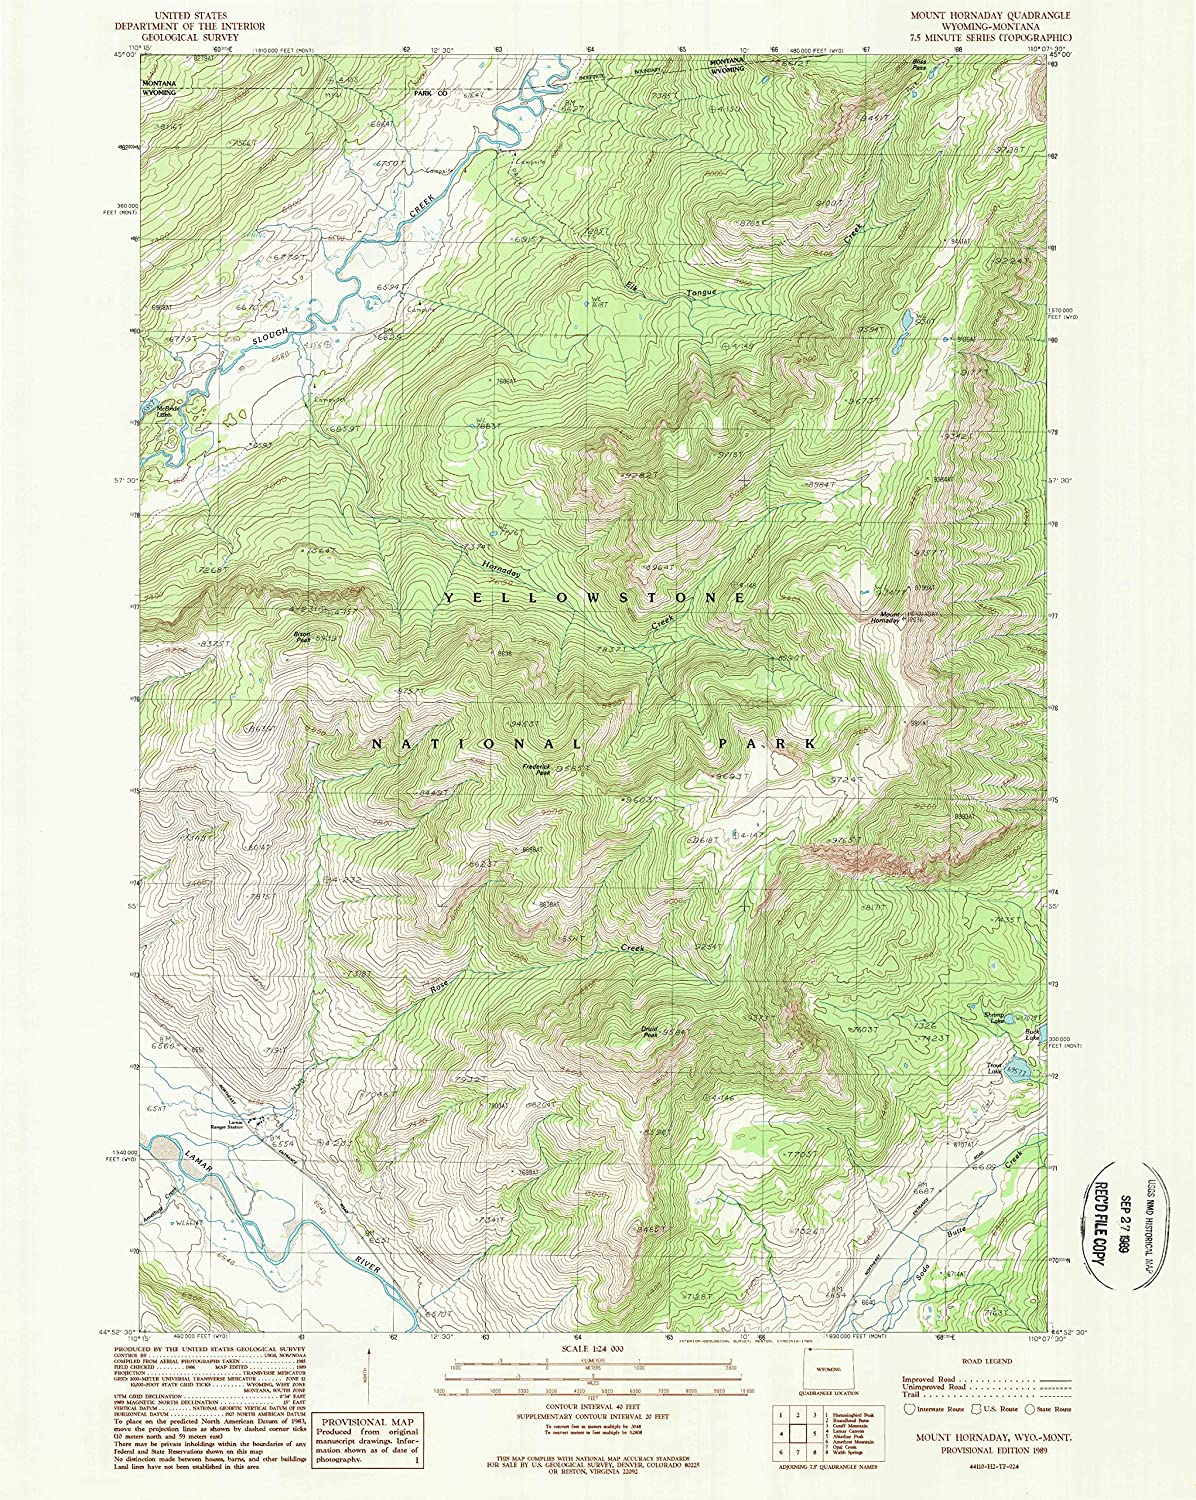 YellowMaps Mount Hornaday WY topo 1:24000 map X Scale 7.5 Oklahoma City Mall specialty shop